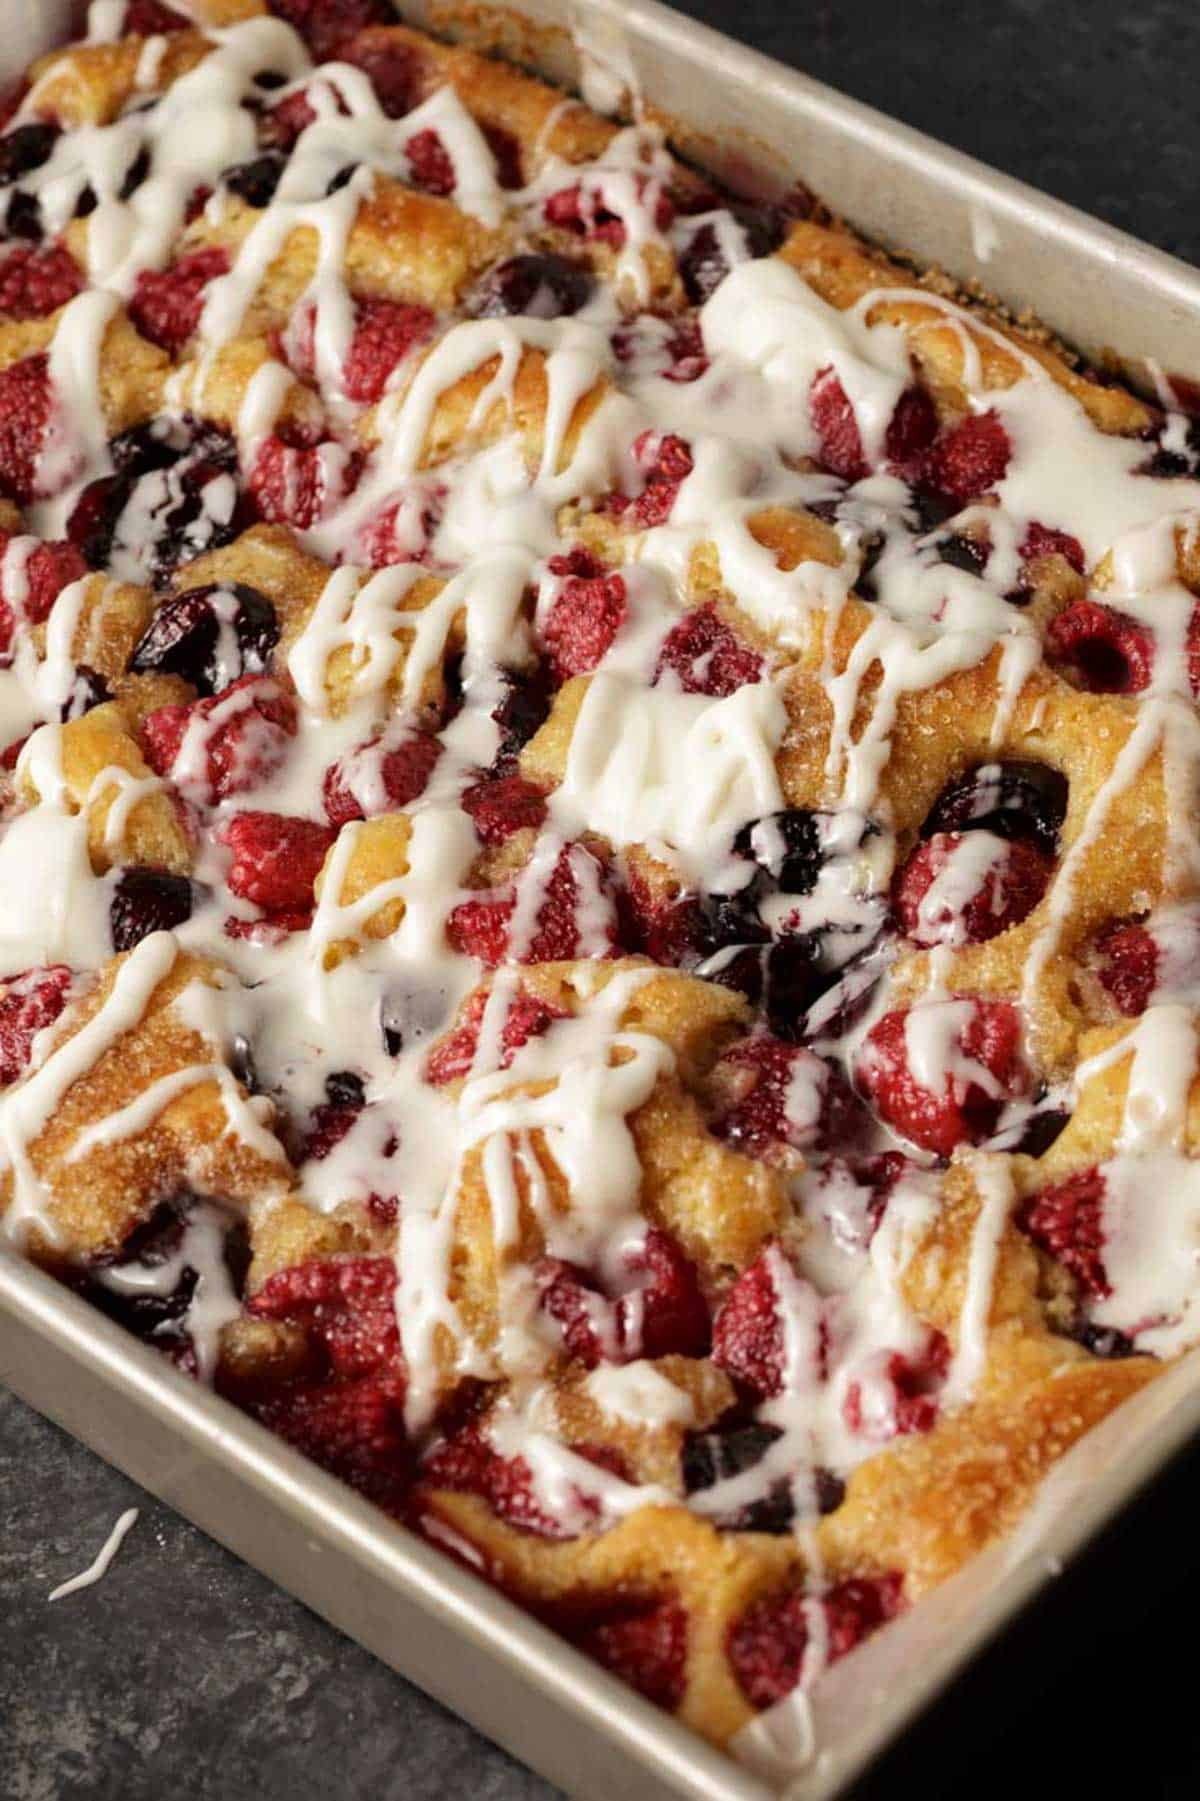 A baking pan of fruit filled coffee cake with icing.